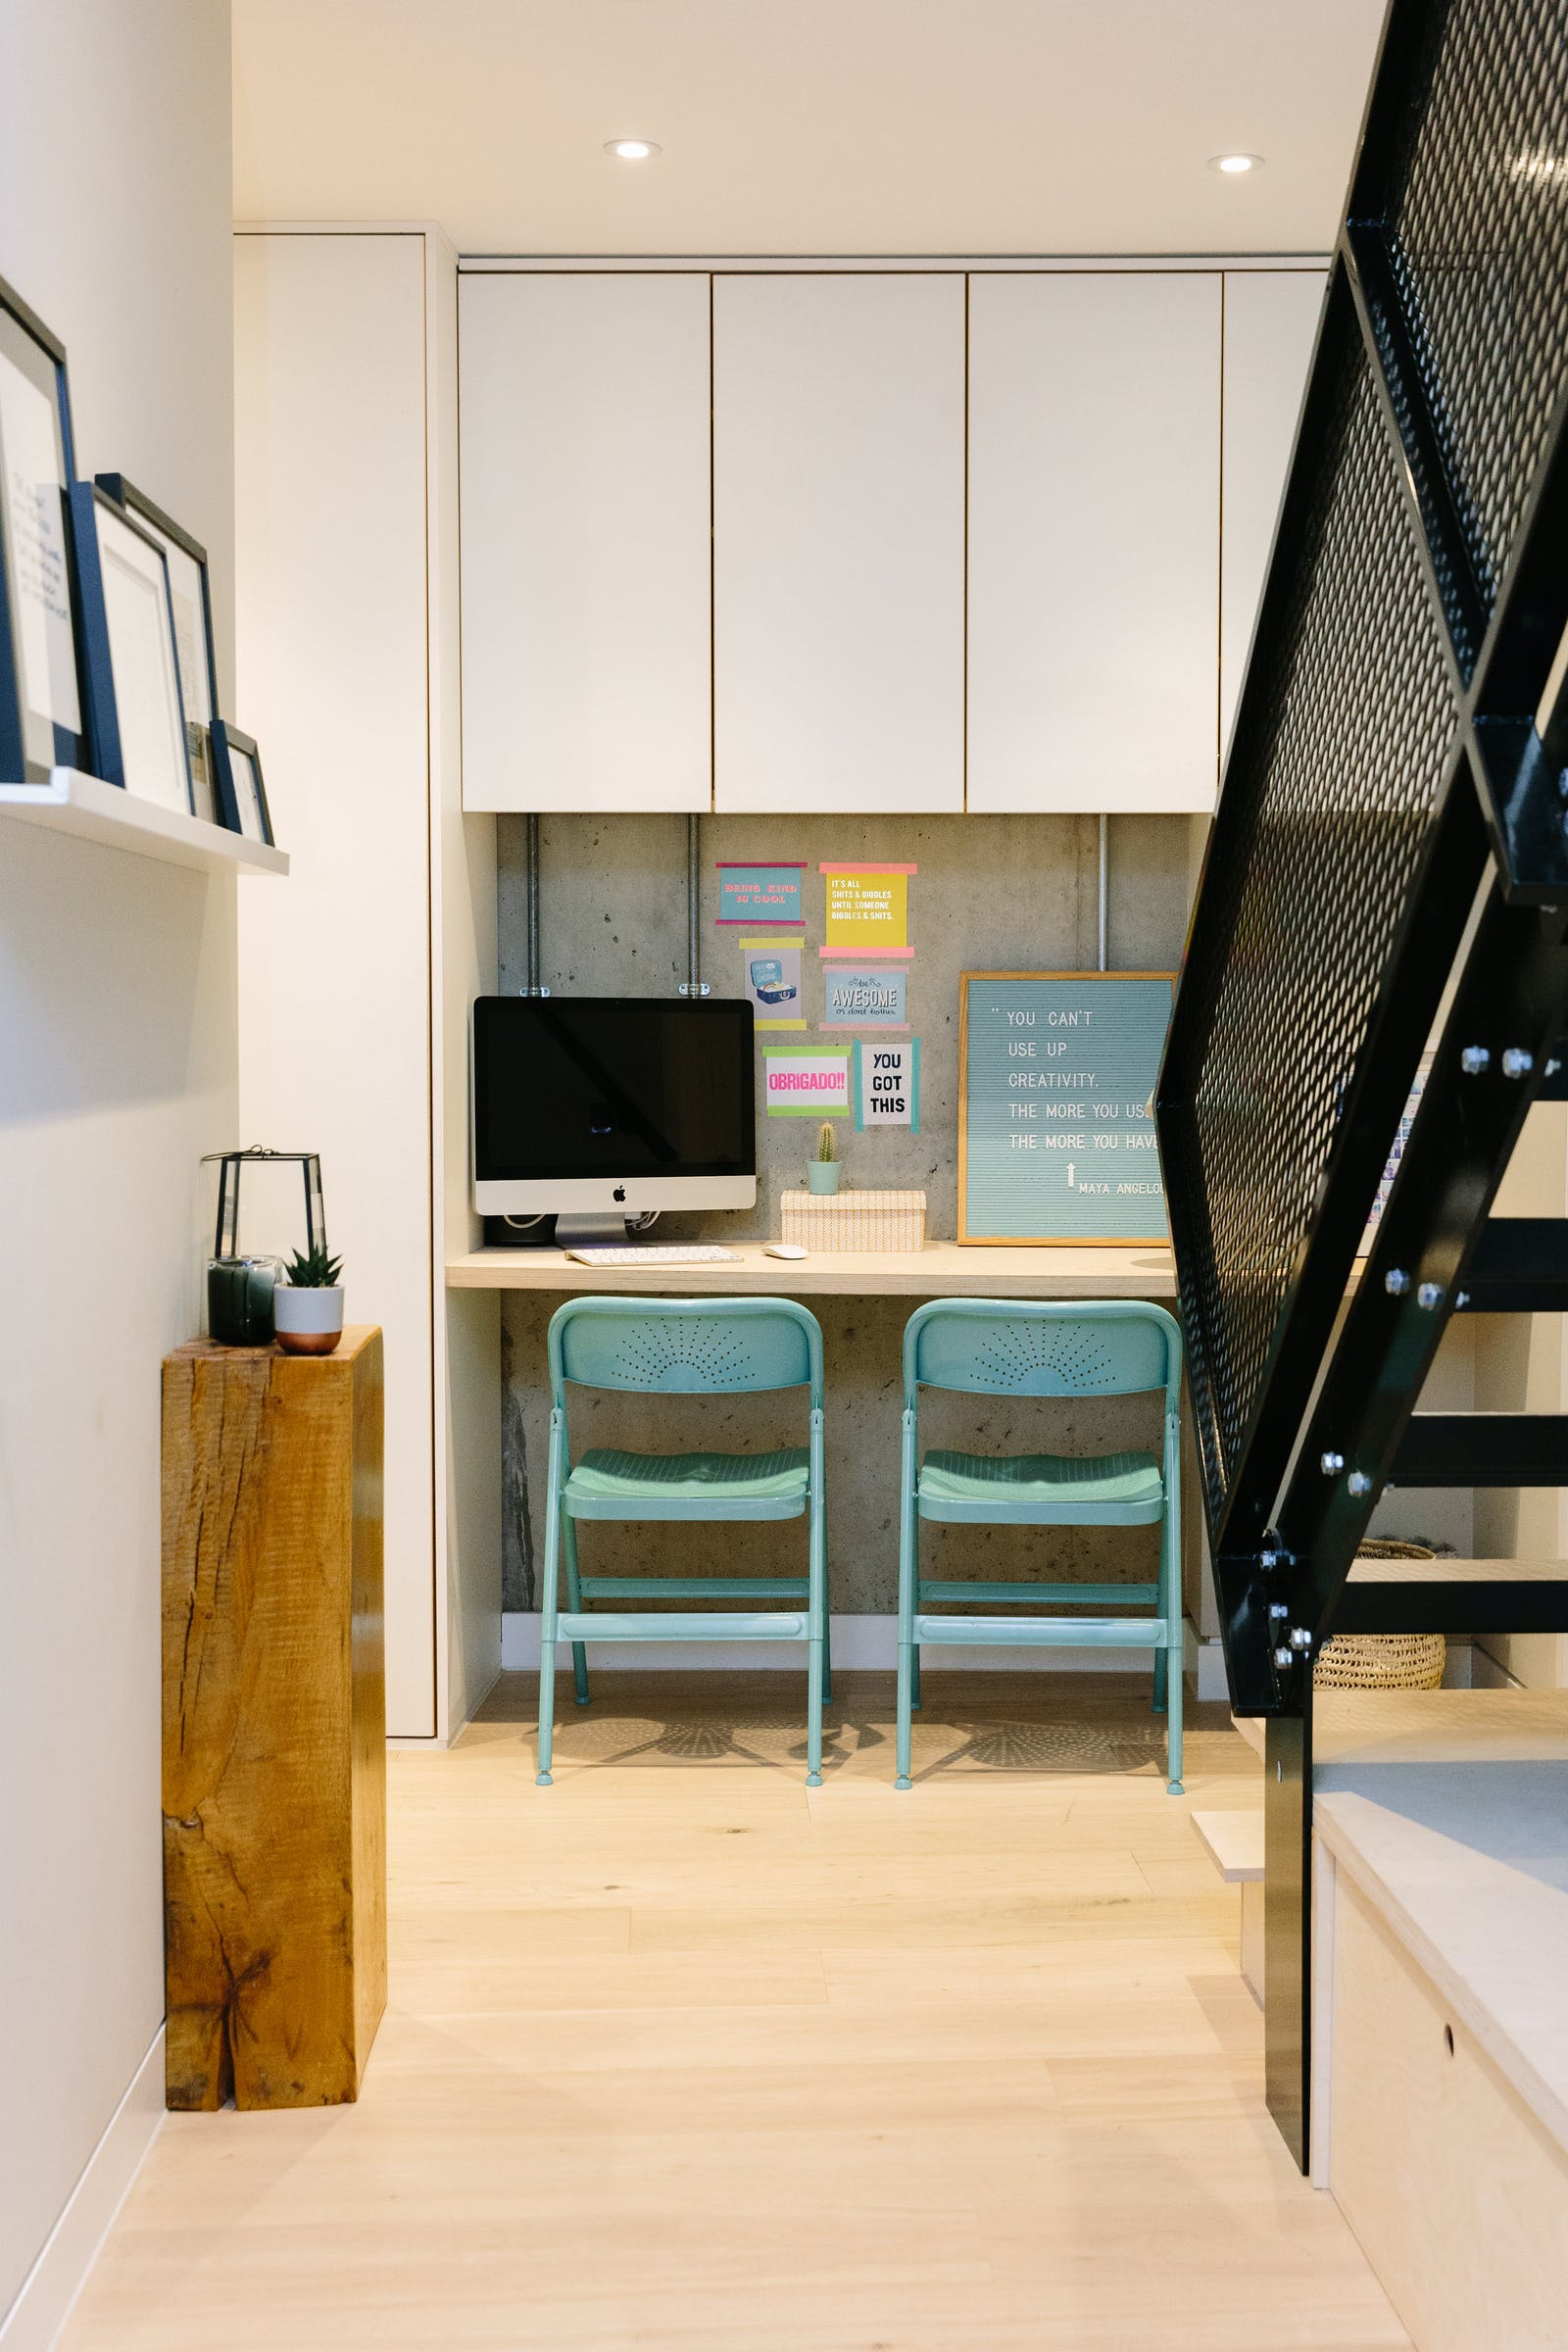 Minimal home office at the bottom of some stairs, with blue chairs and white cupboards